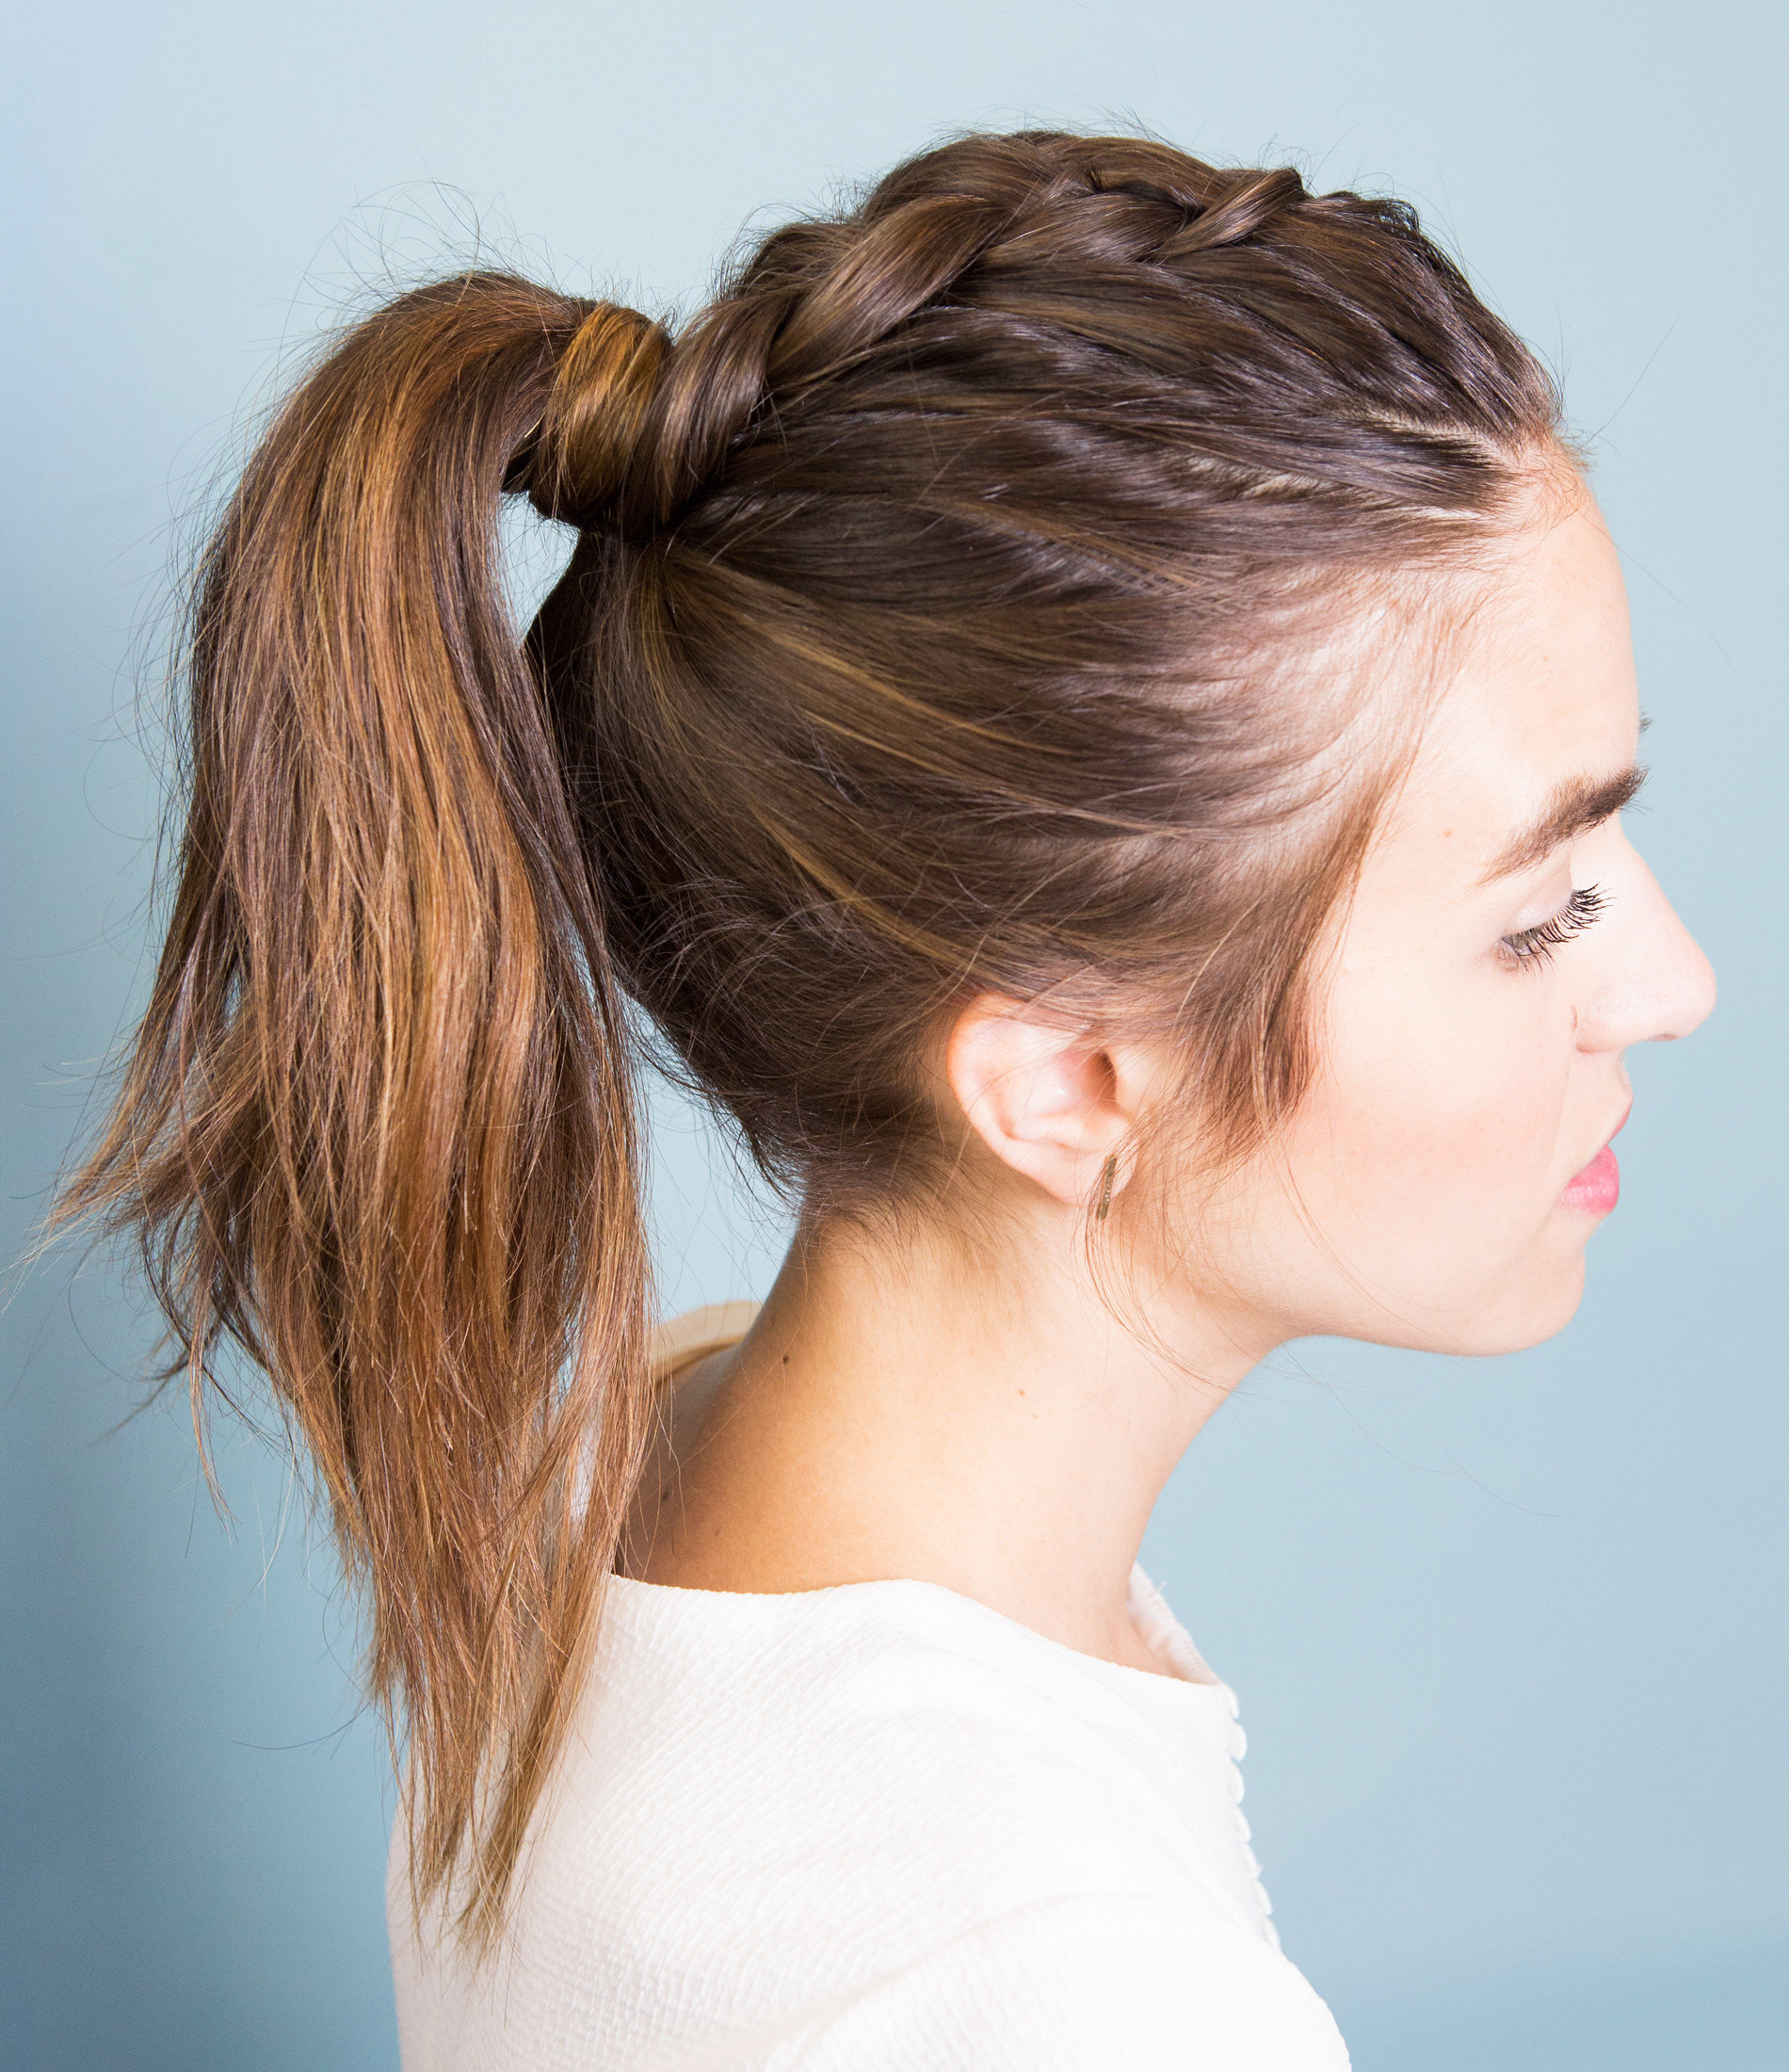 The Pony Braid Gif You Need To Check Out